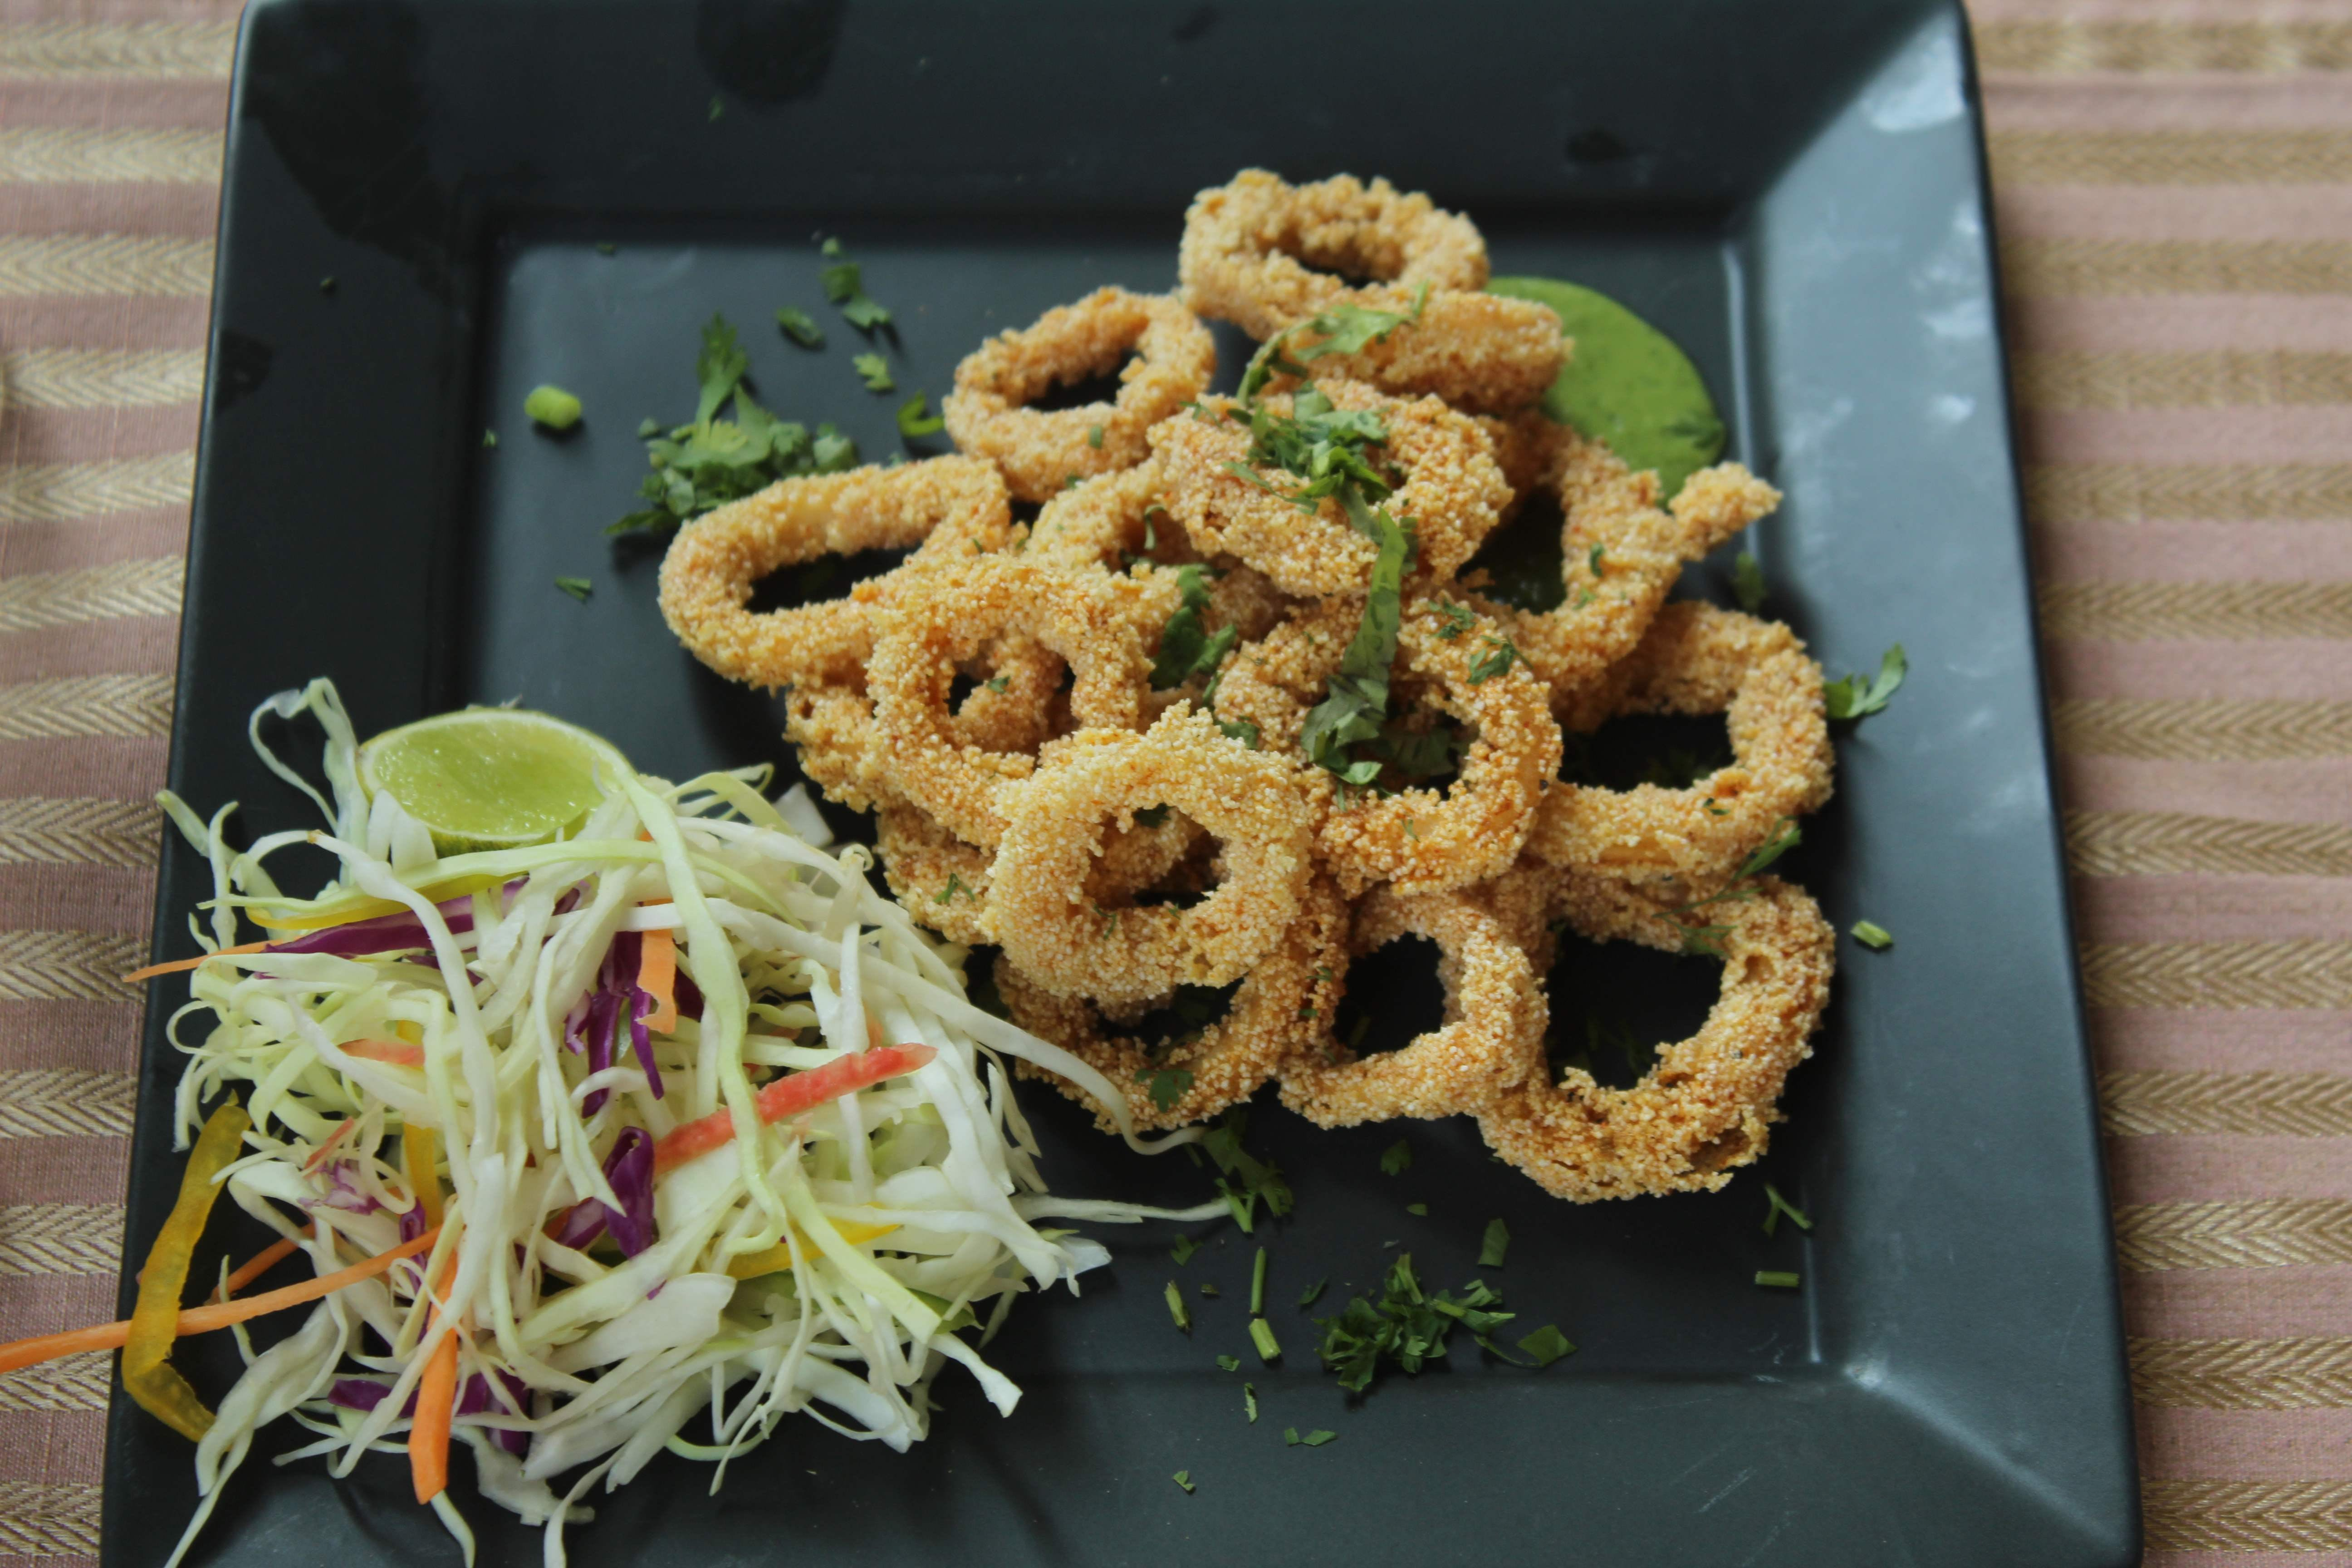 Dish,Food,Cuisine,Fried food,Deep frying,Onion ring,Ingredient,Side dish,Produce,Frying